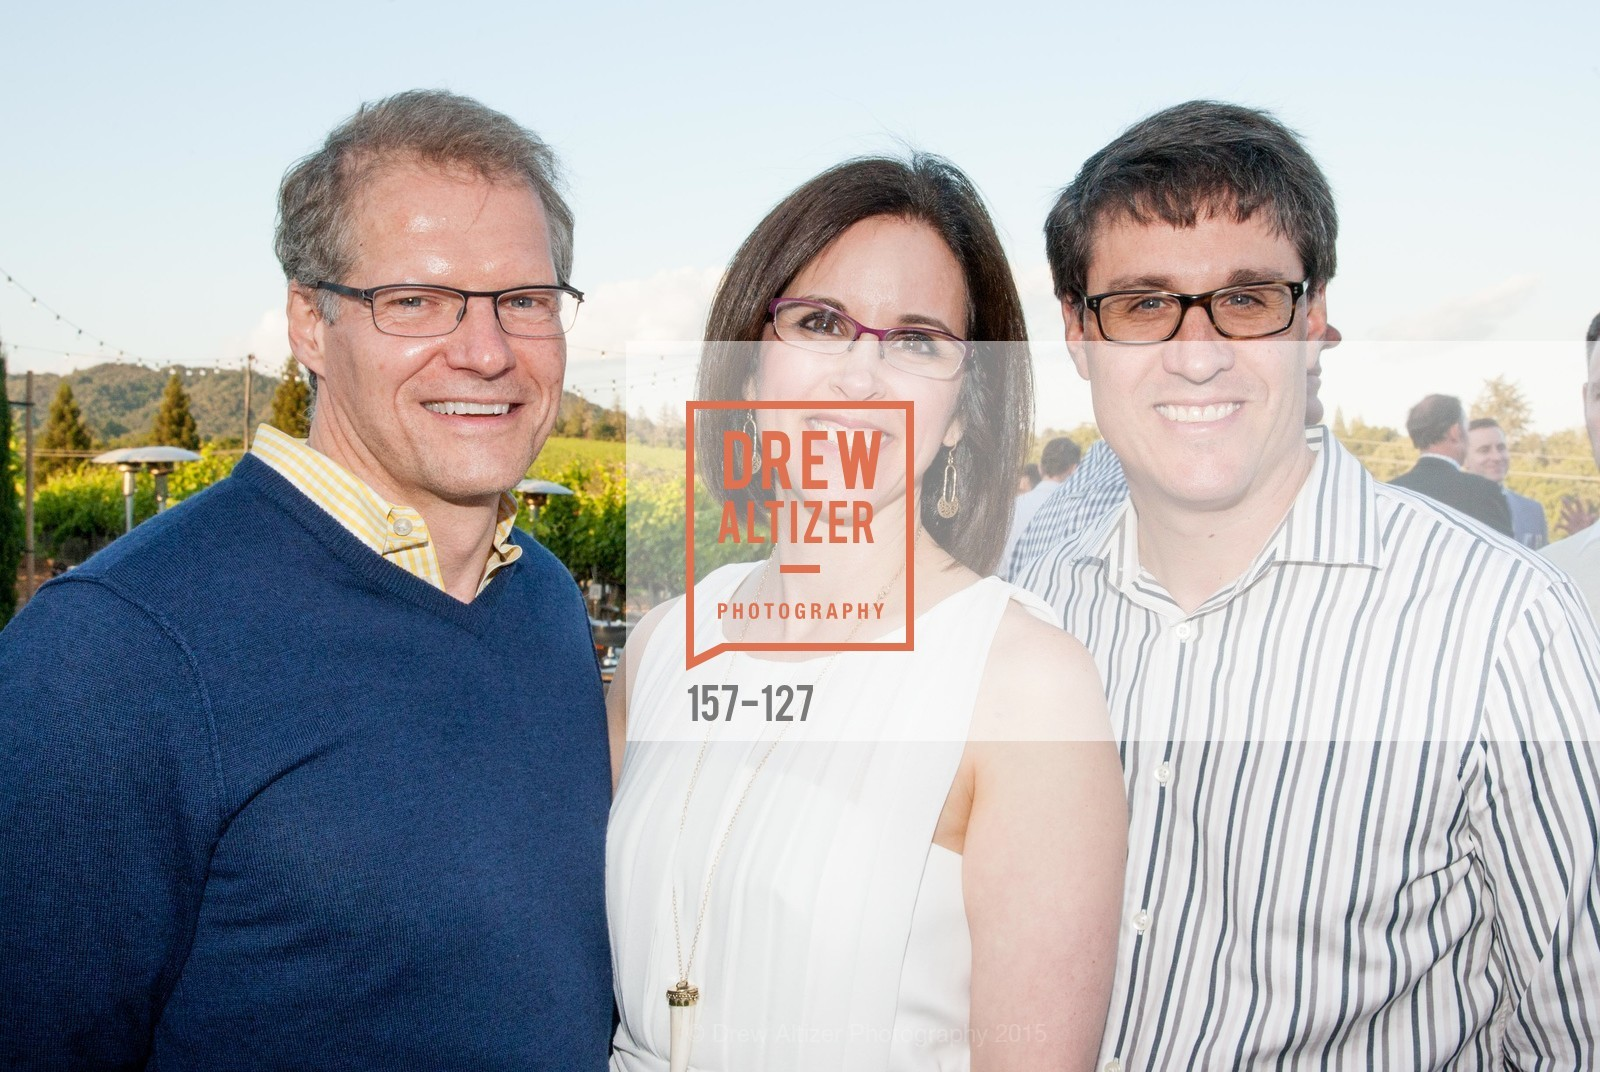 Bruce Deming, Ellen Fleishhacker, William Fleishhacker, An Evening in the Vineyard hosted by JACK CALHOUN & TRENT NORRIS, Jack Calhoun & Trent Norris Vineyard. 3393 Dry Creek Road, Healdsburg CA 95448, May 22nd, 2015,Drew Altizer, Drew Altizer Photography, full-service agency, private events, San Francisco photographer, photographer california